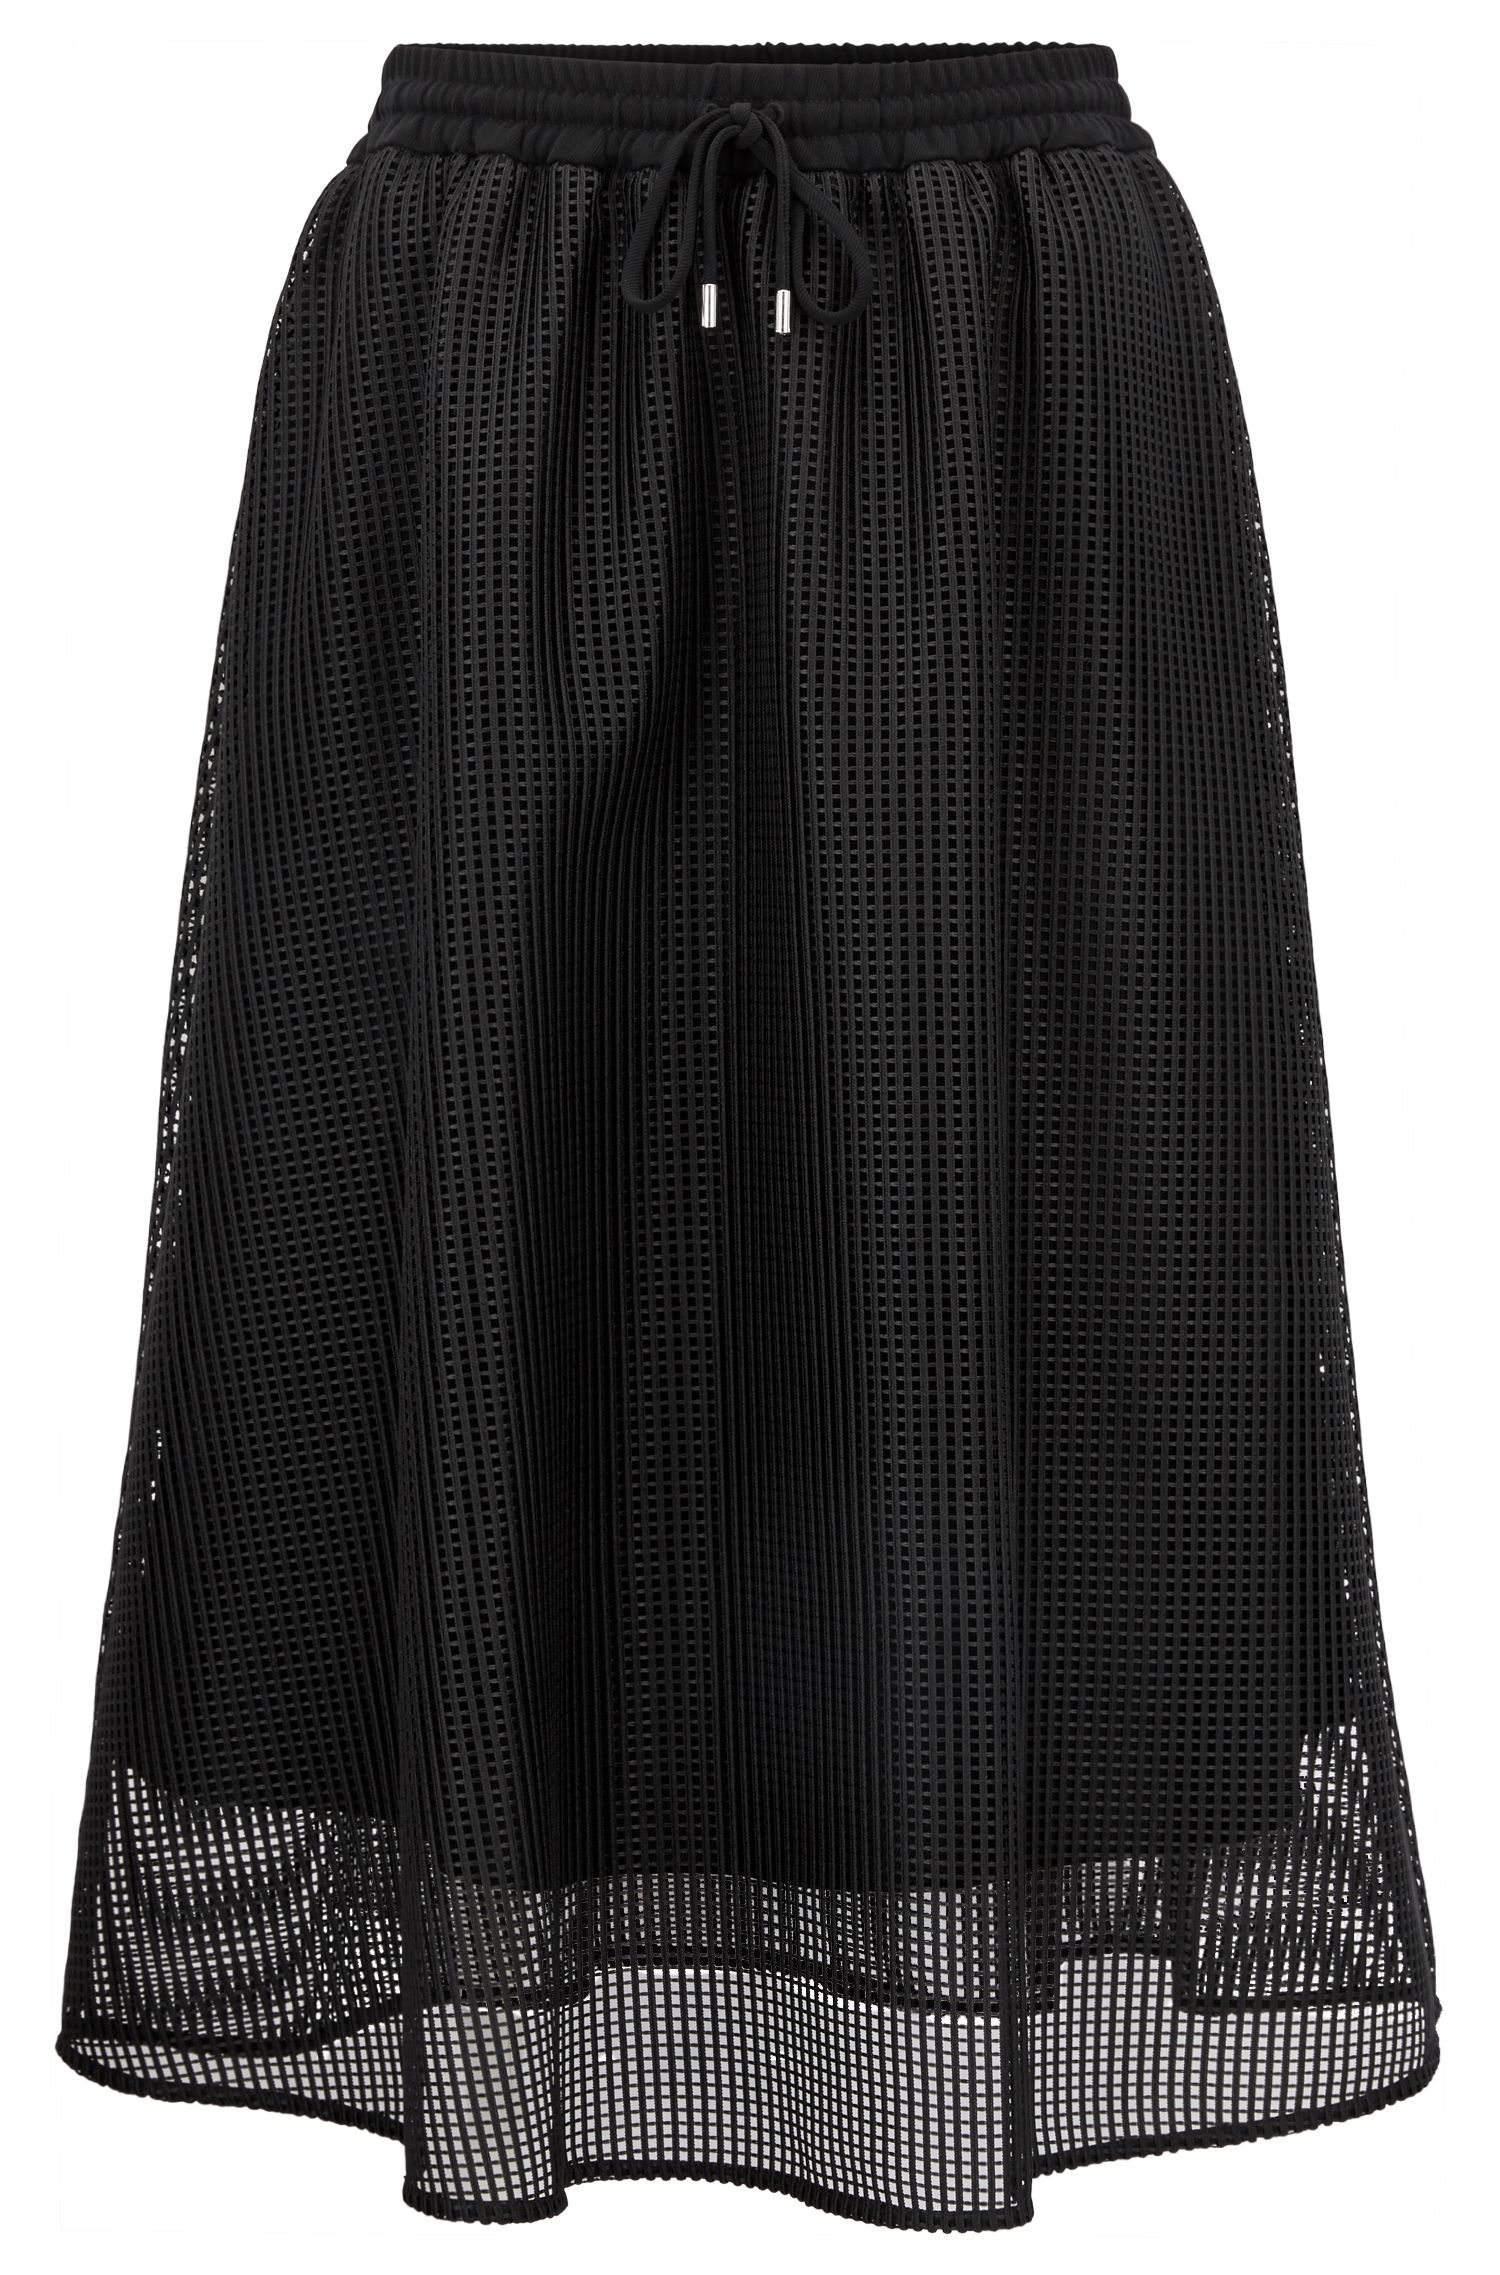 A-line mesh skirt with drawstring waist